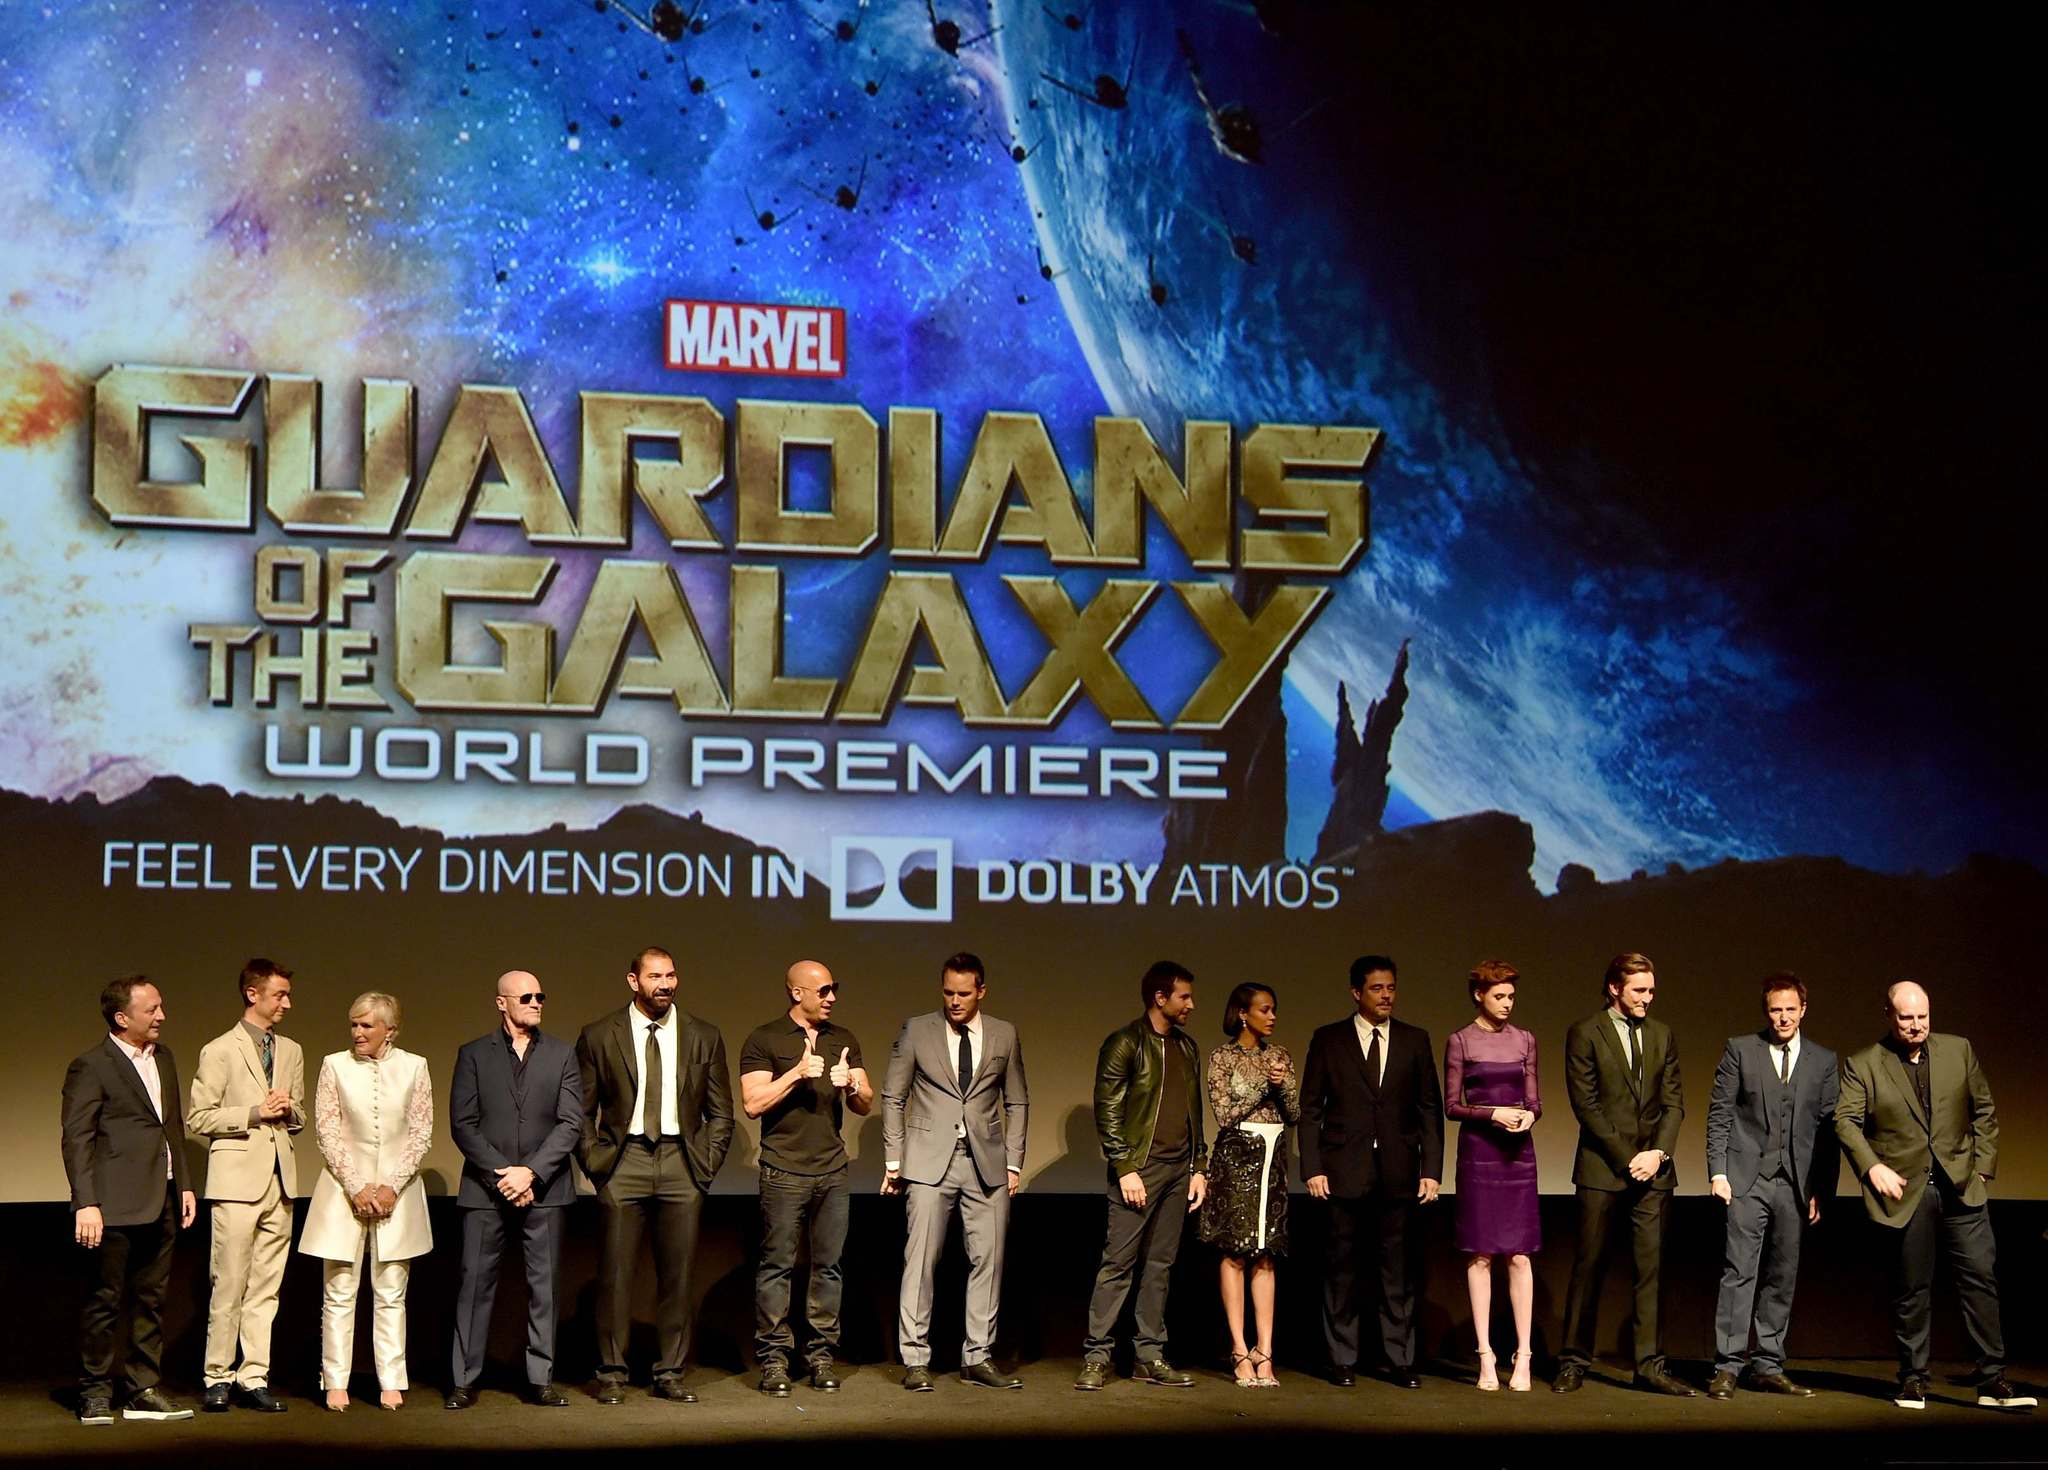 Glenn Close, Benicio Del Toro, Vin Diesel, Bradley Cooper, Louis D'Esposito, Kevin Feige, Sean Gunn, Chris Pratt, Michael Rooker, Zoe Saldana, Dave Bautista, Lee Pace and Karen Gillan at event of Guardians of the Galaxy (2014) photo #489487